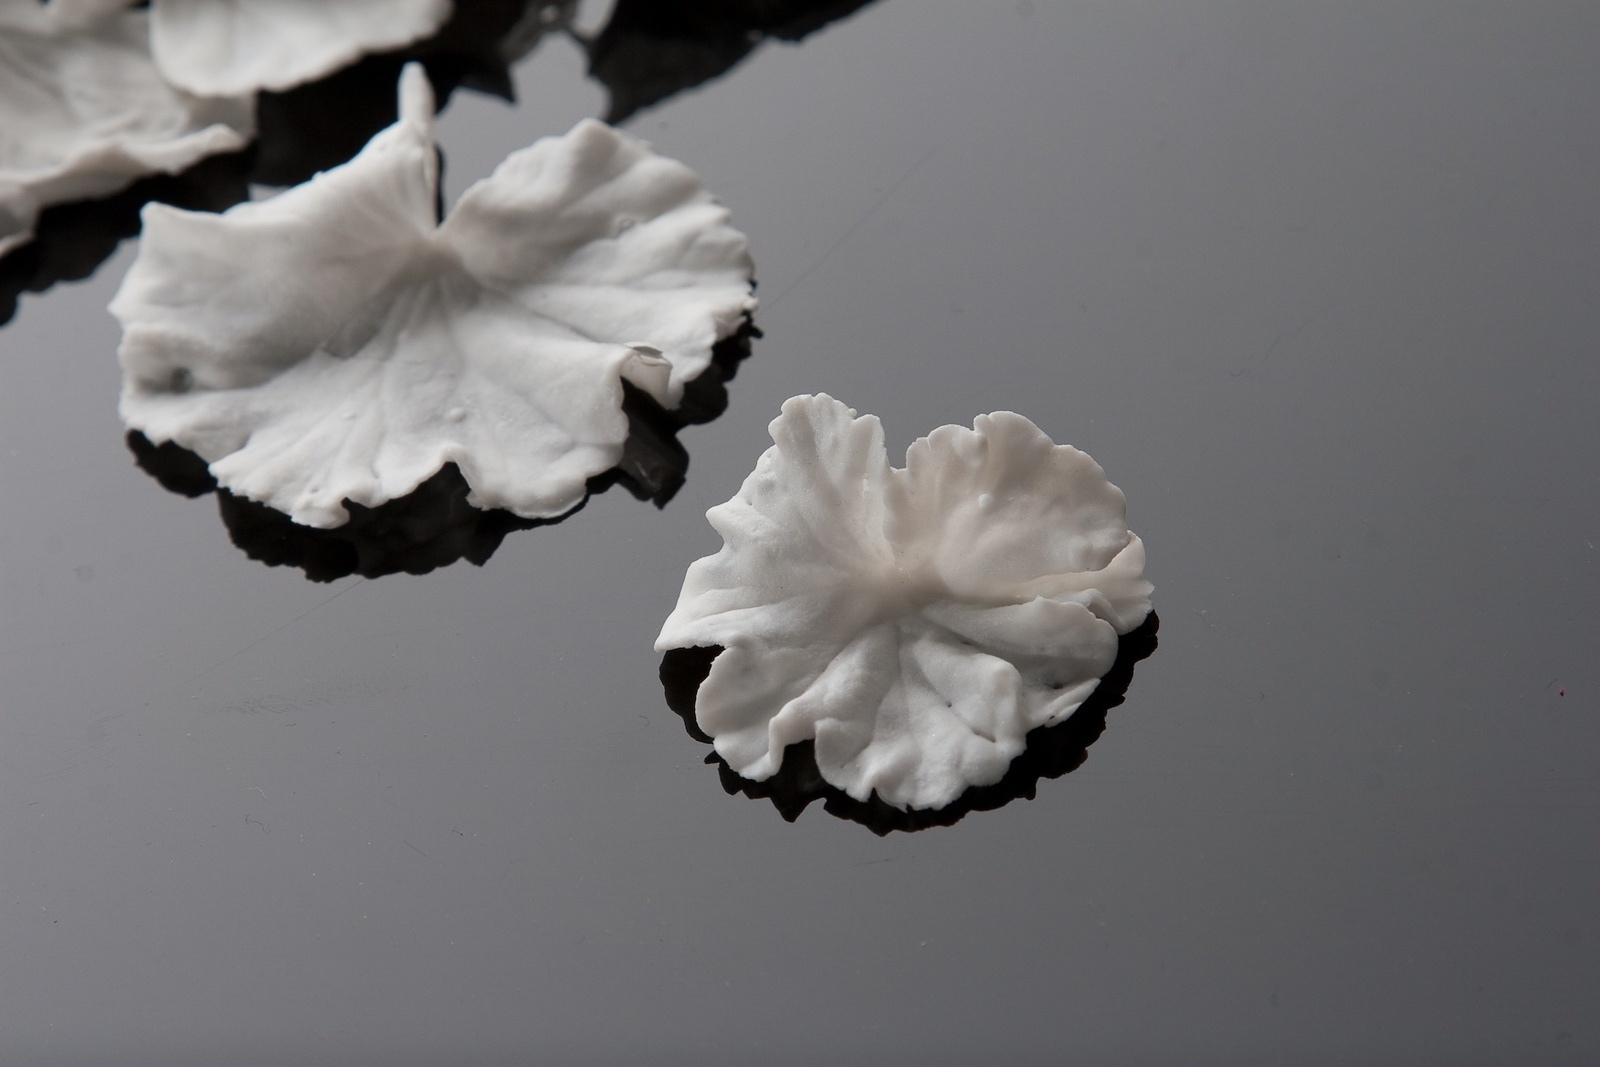 Crumbling Ecology, 2012. Hand made Porcelain, Installation Detail. image